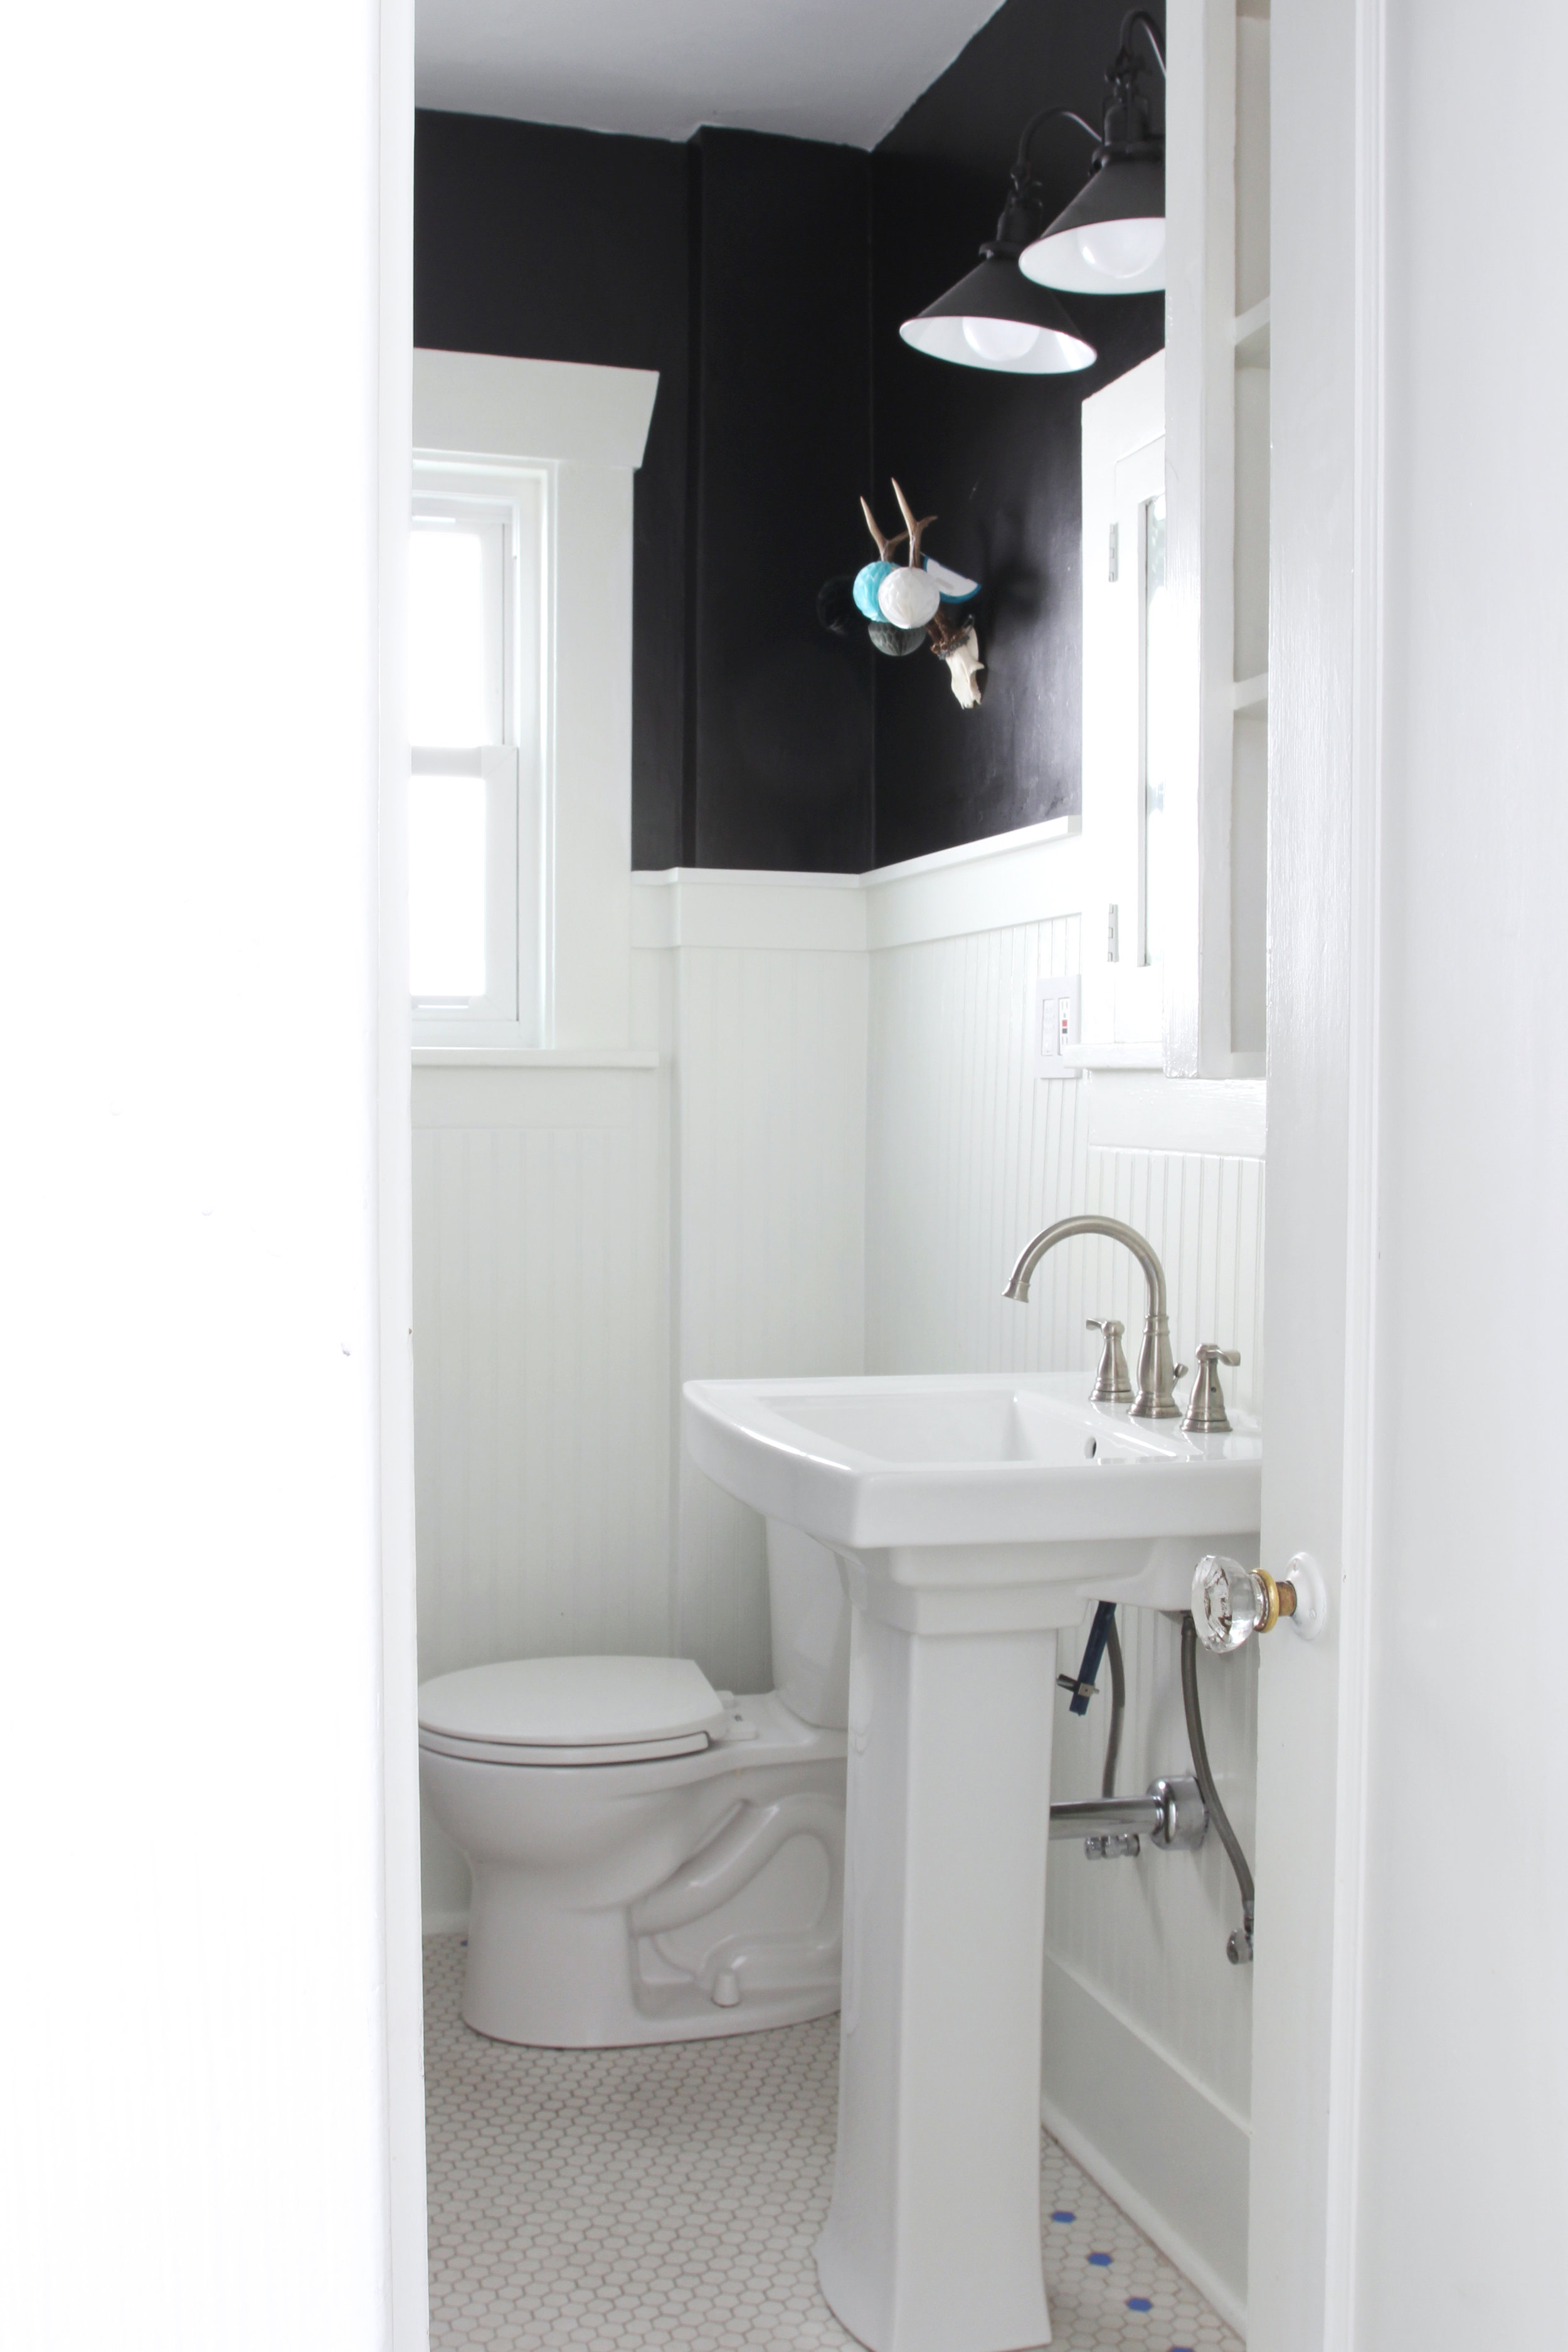 bathroom remodel under $1000 // the Dexter House // from the Grit and Polish